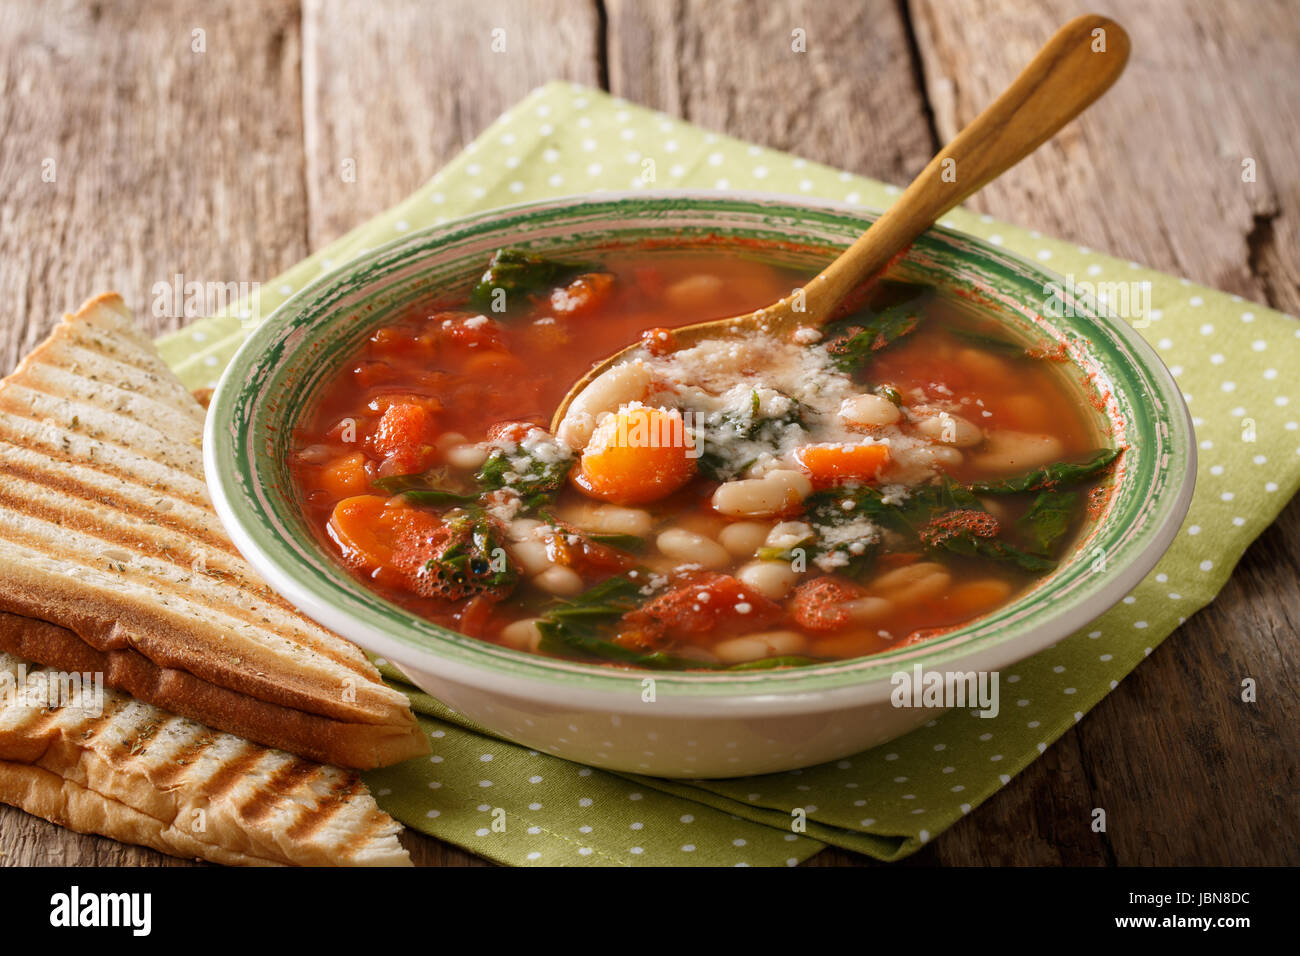 Tomato soup with beans, spinach and parmesan close-up on the table. Horizontal - Stock Image